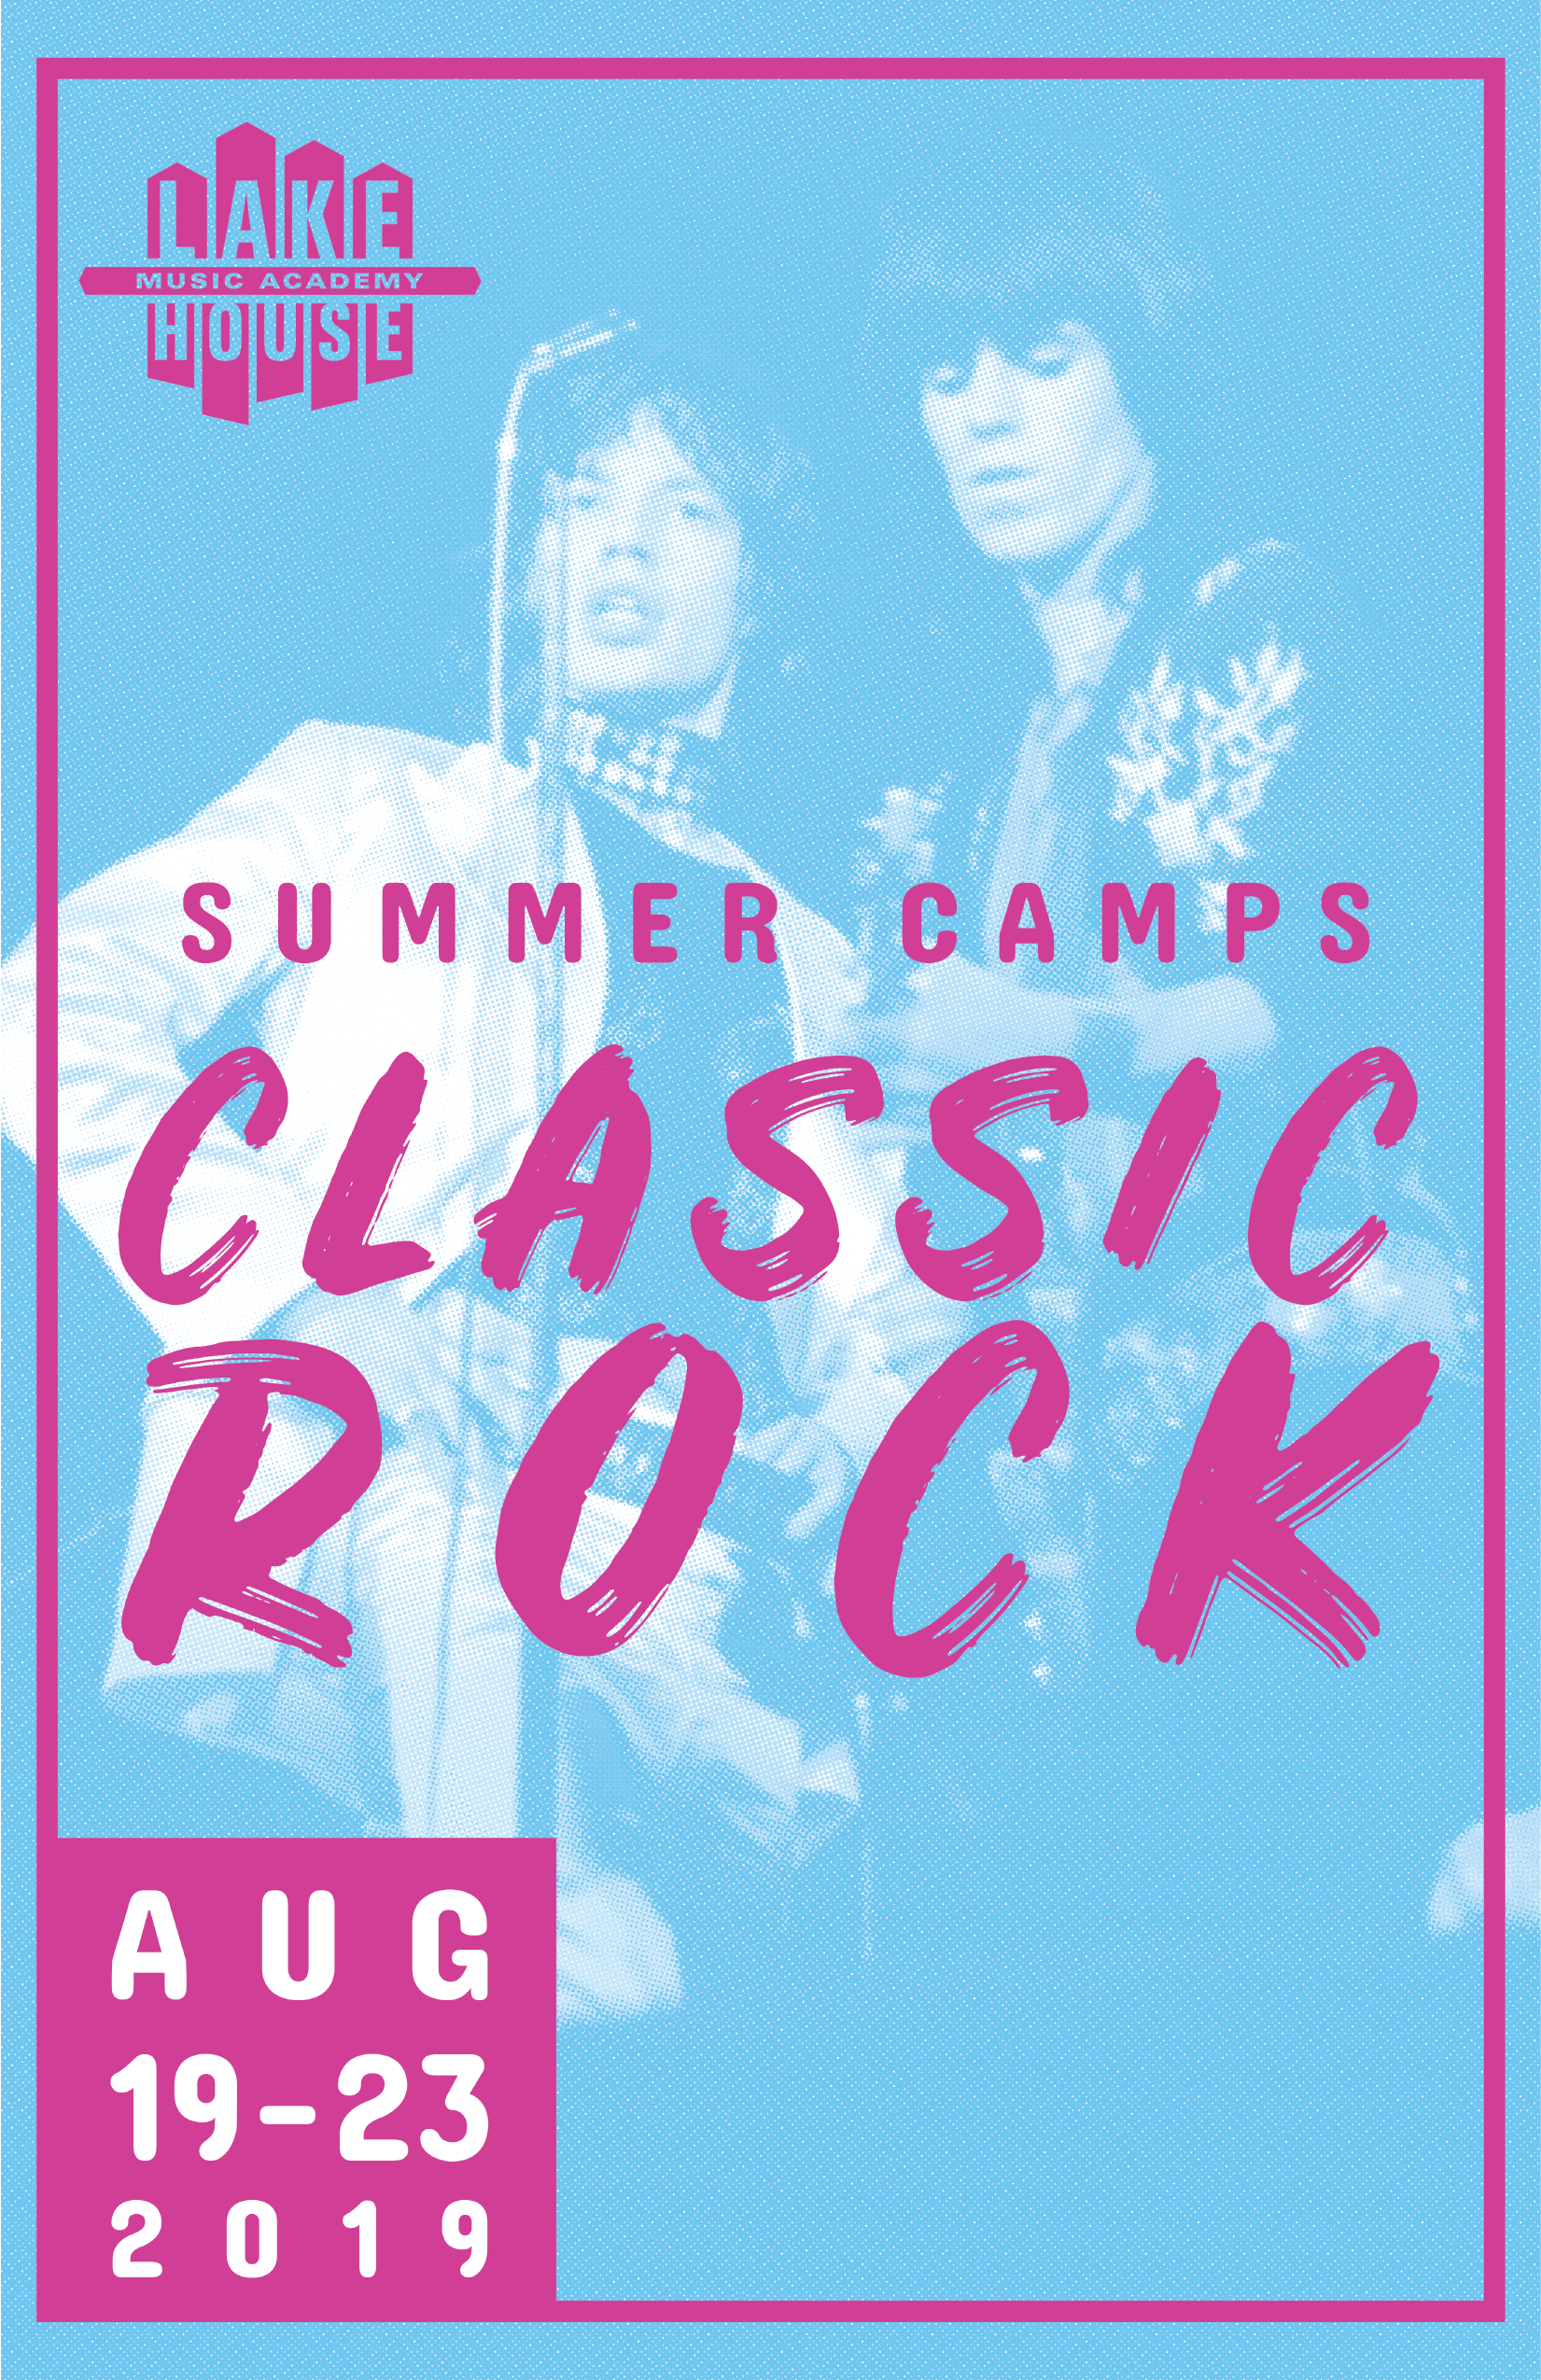 classic Rock - August 19 - 23